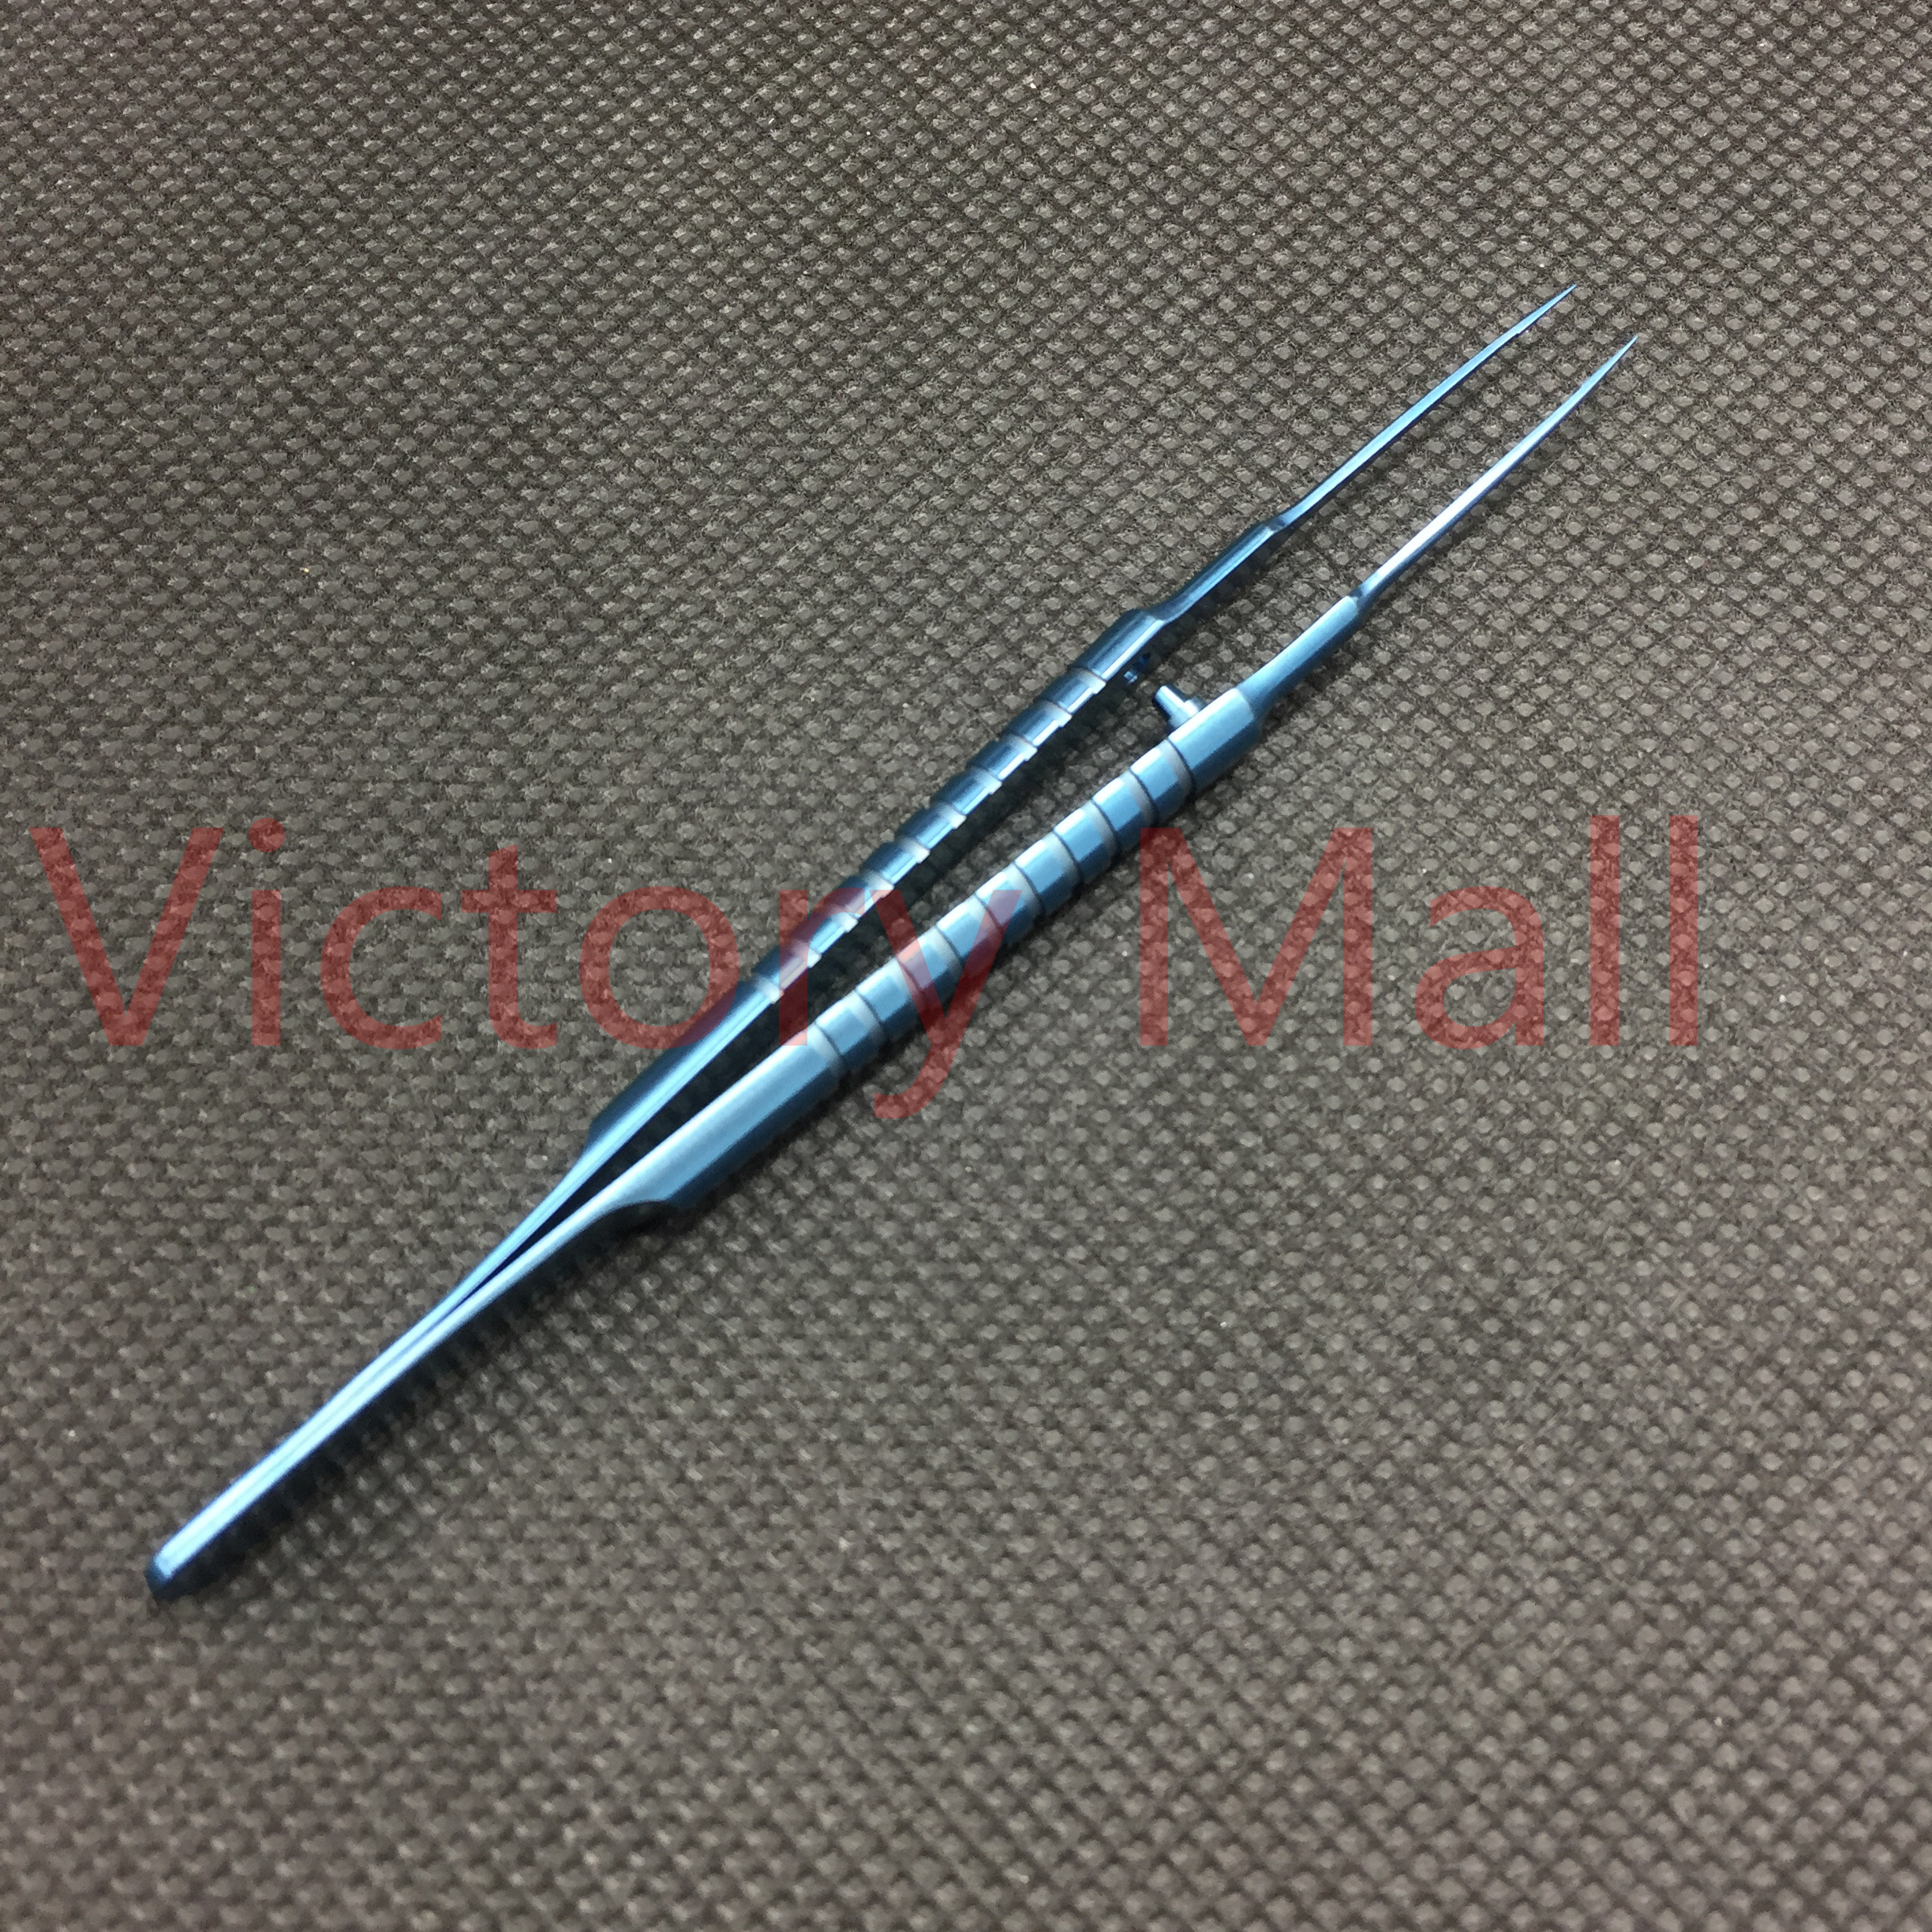 110mm Straight Tying Forcep with 6mm tying platform Titanium ophthalmic surgical instruments Tool110mm Straight Tying Forcep with 6mm tying platform Titanium ophthalmic surgical instruments Tool